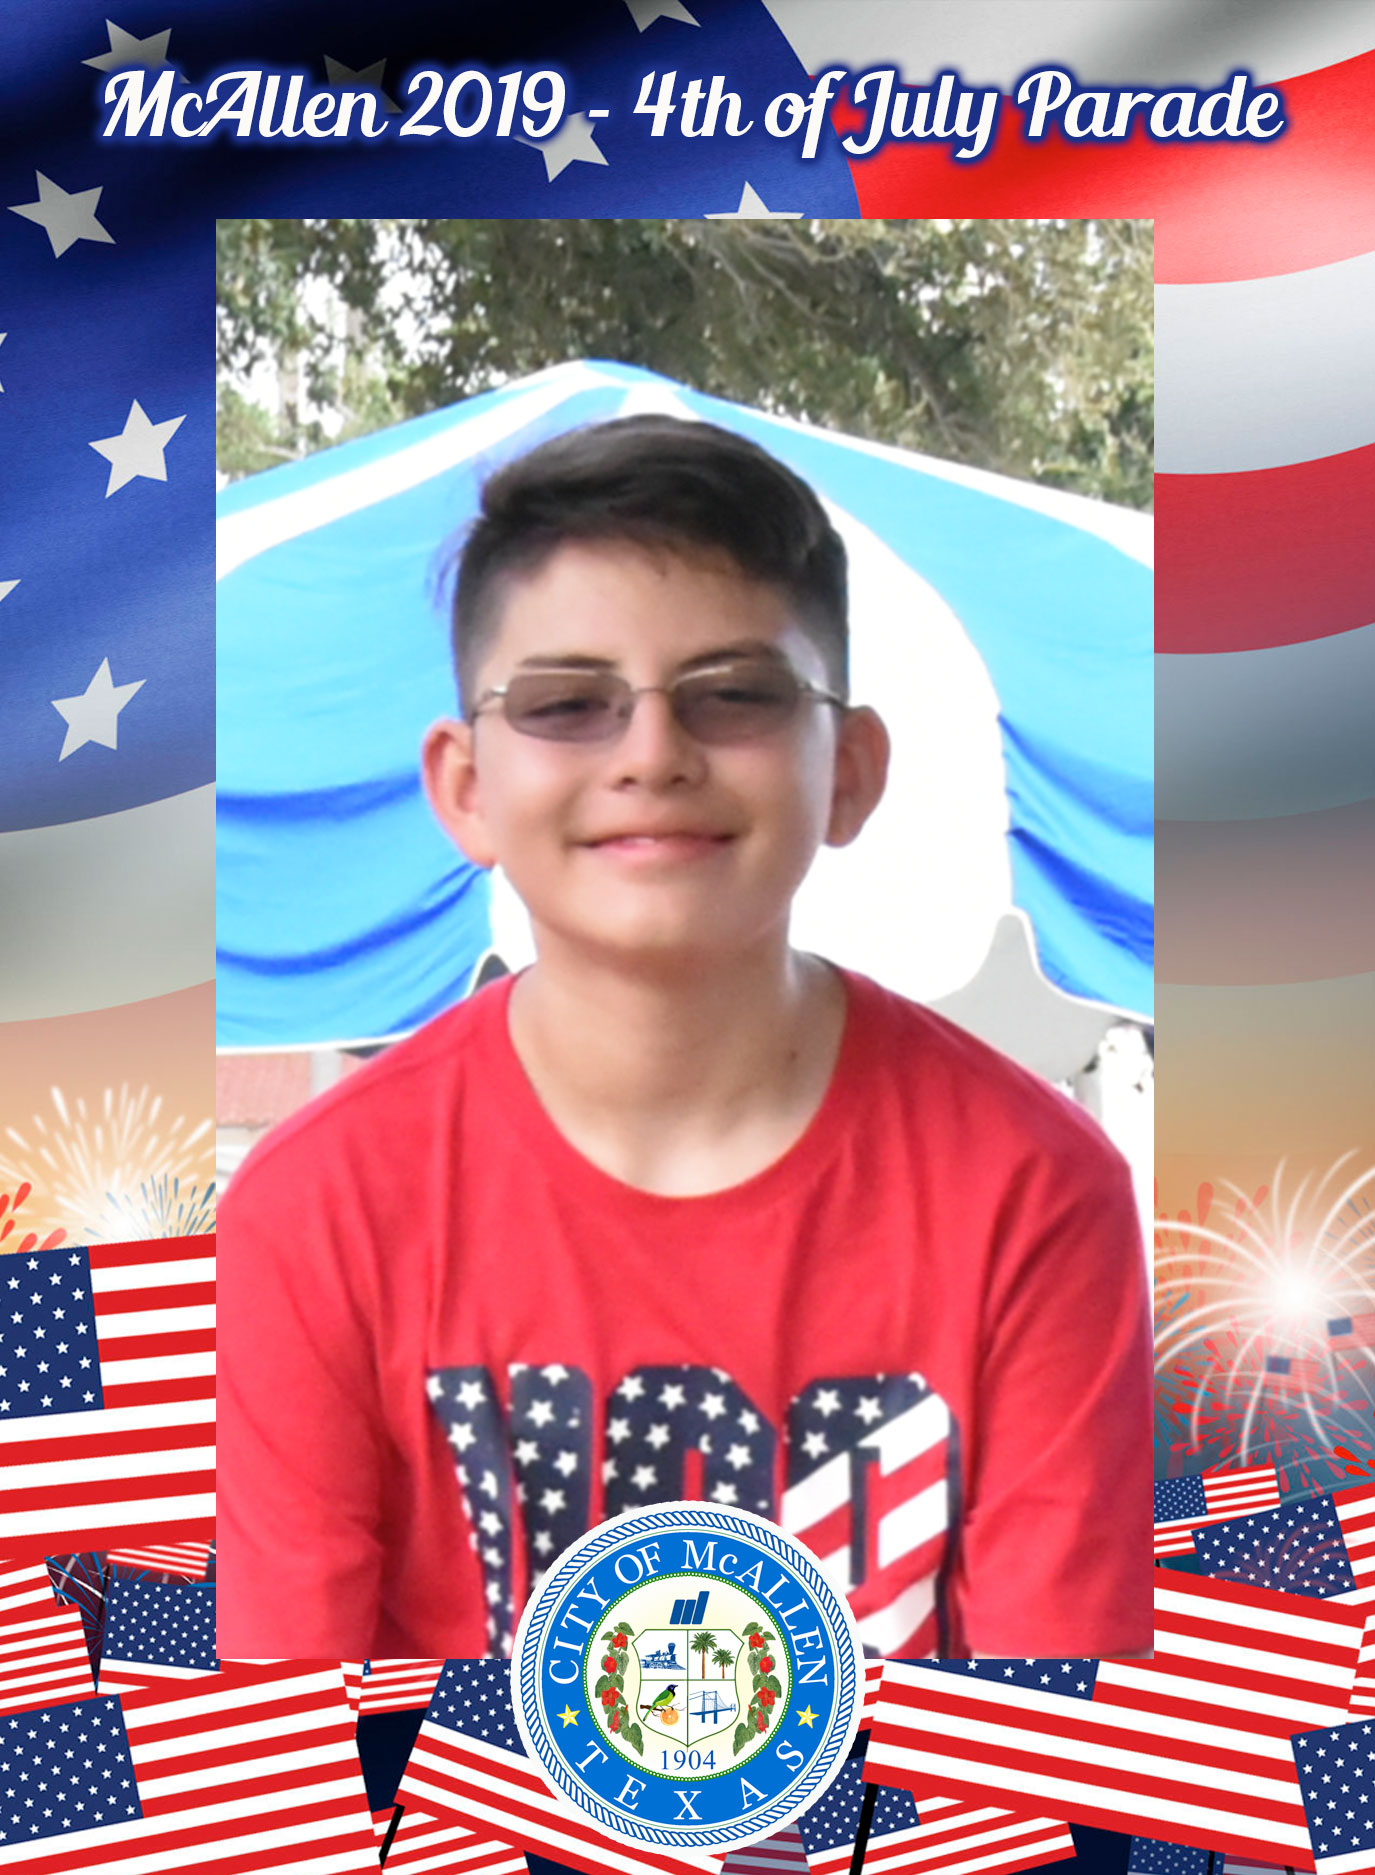 McAllen 4th of July Parade 2019 – Faces Part 1